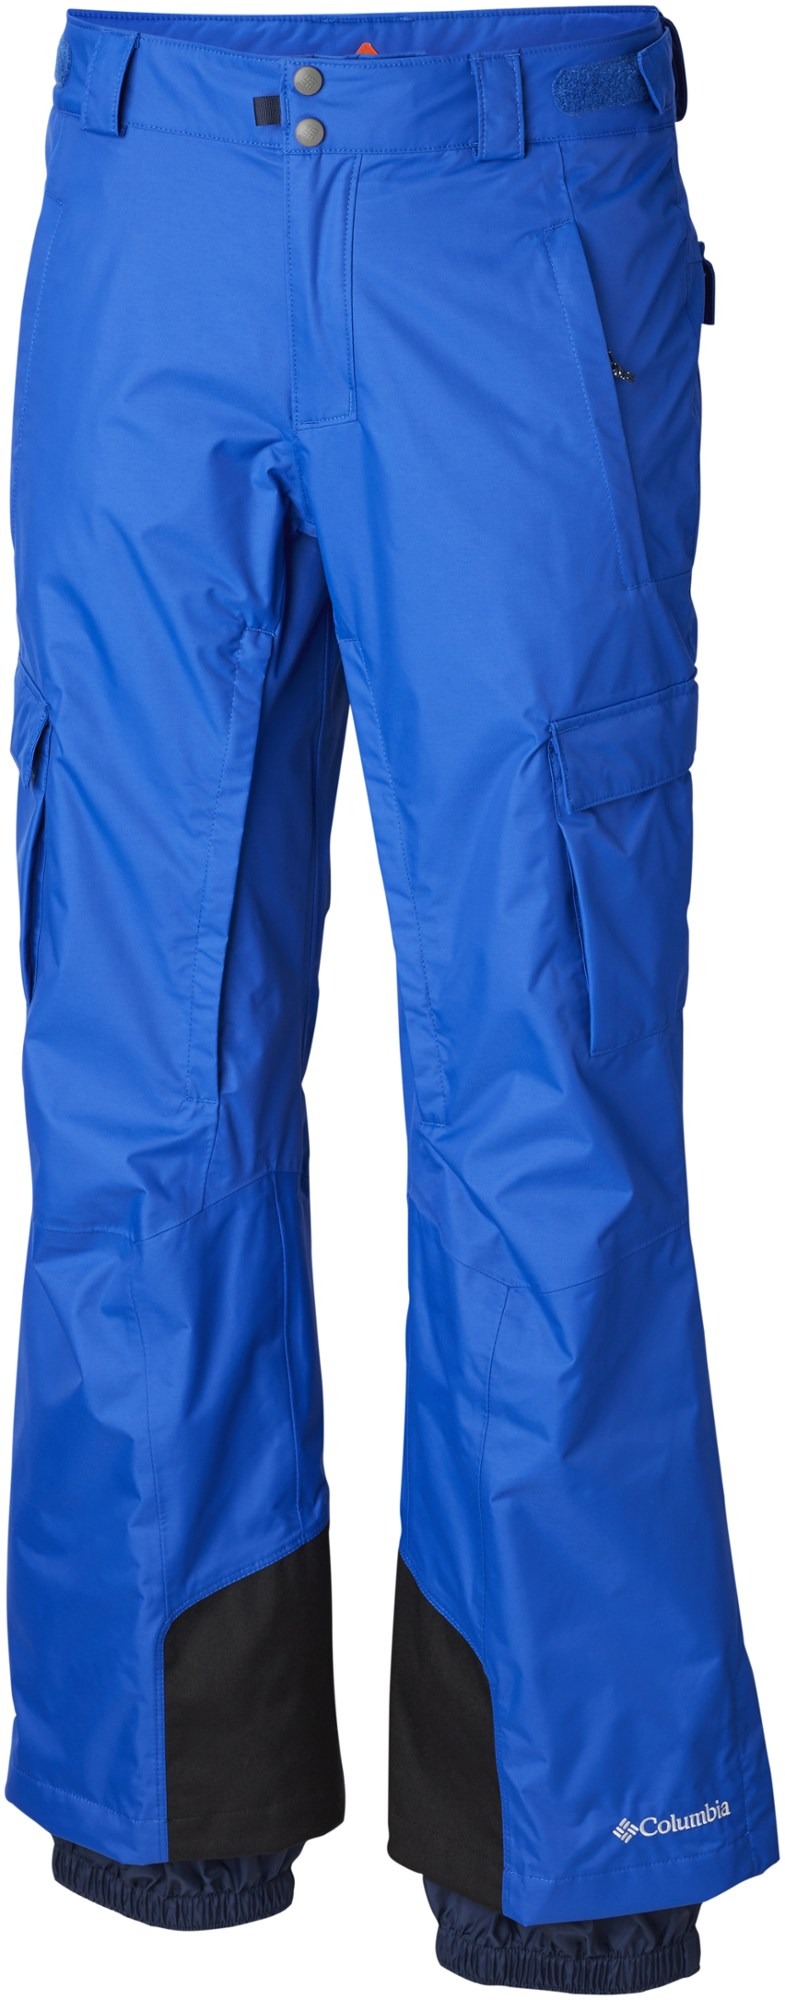 Columbia Ridge 2 Run II Pants - Men's Short